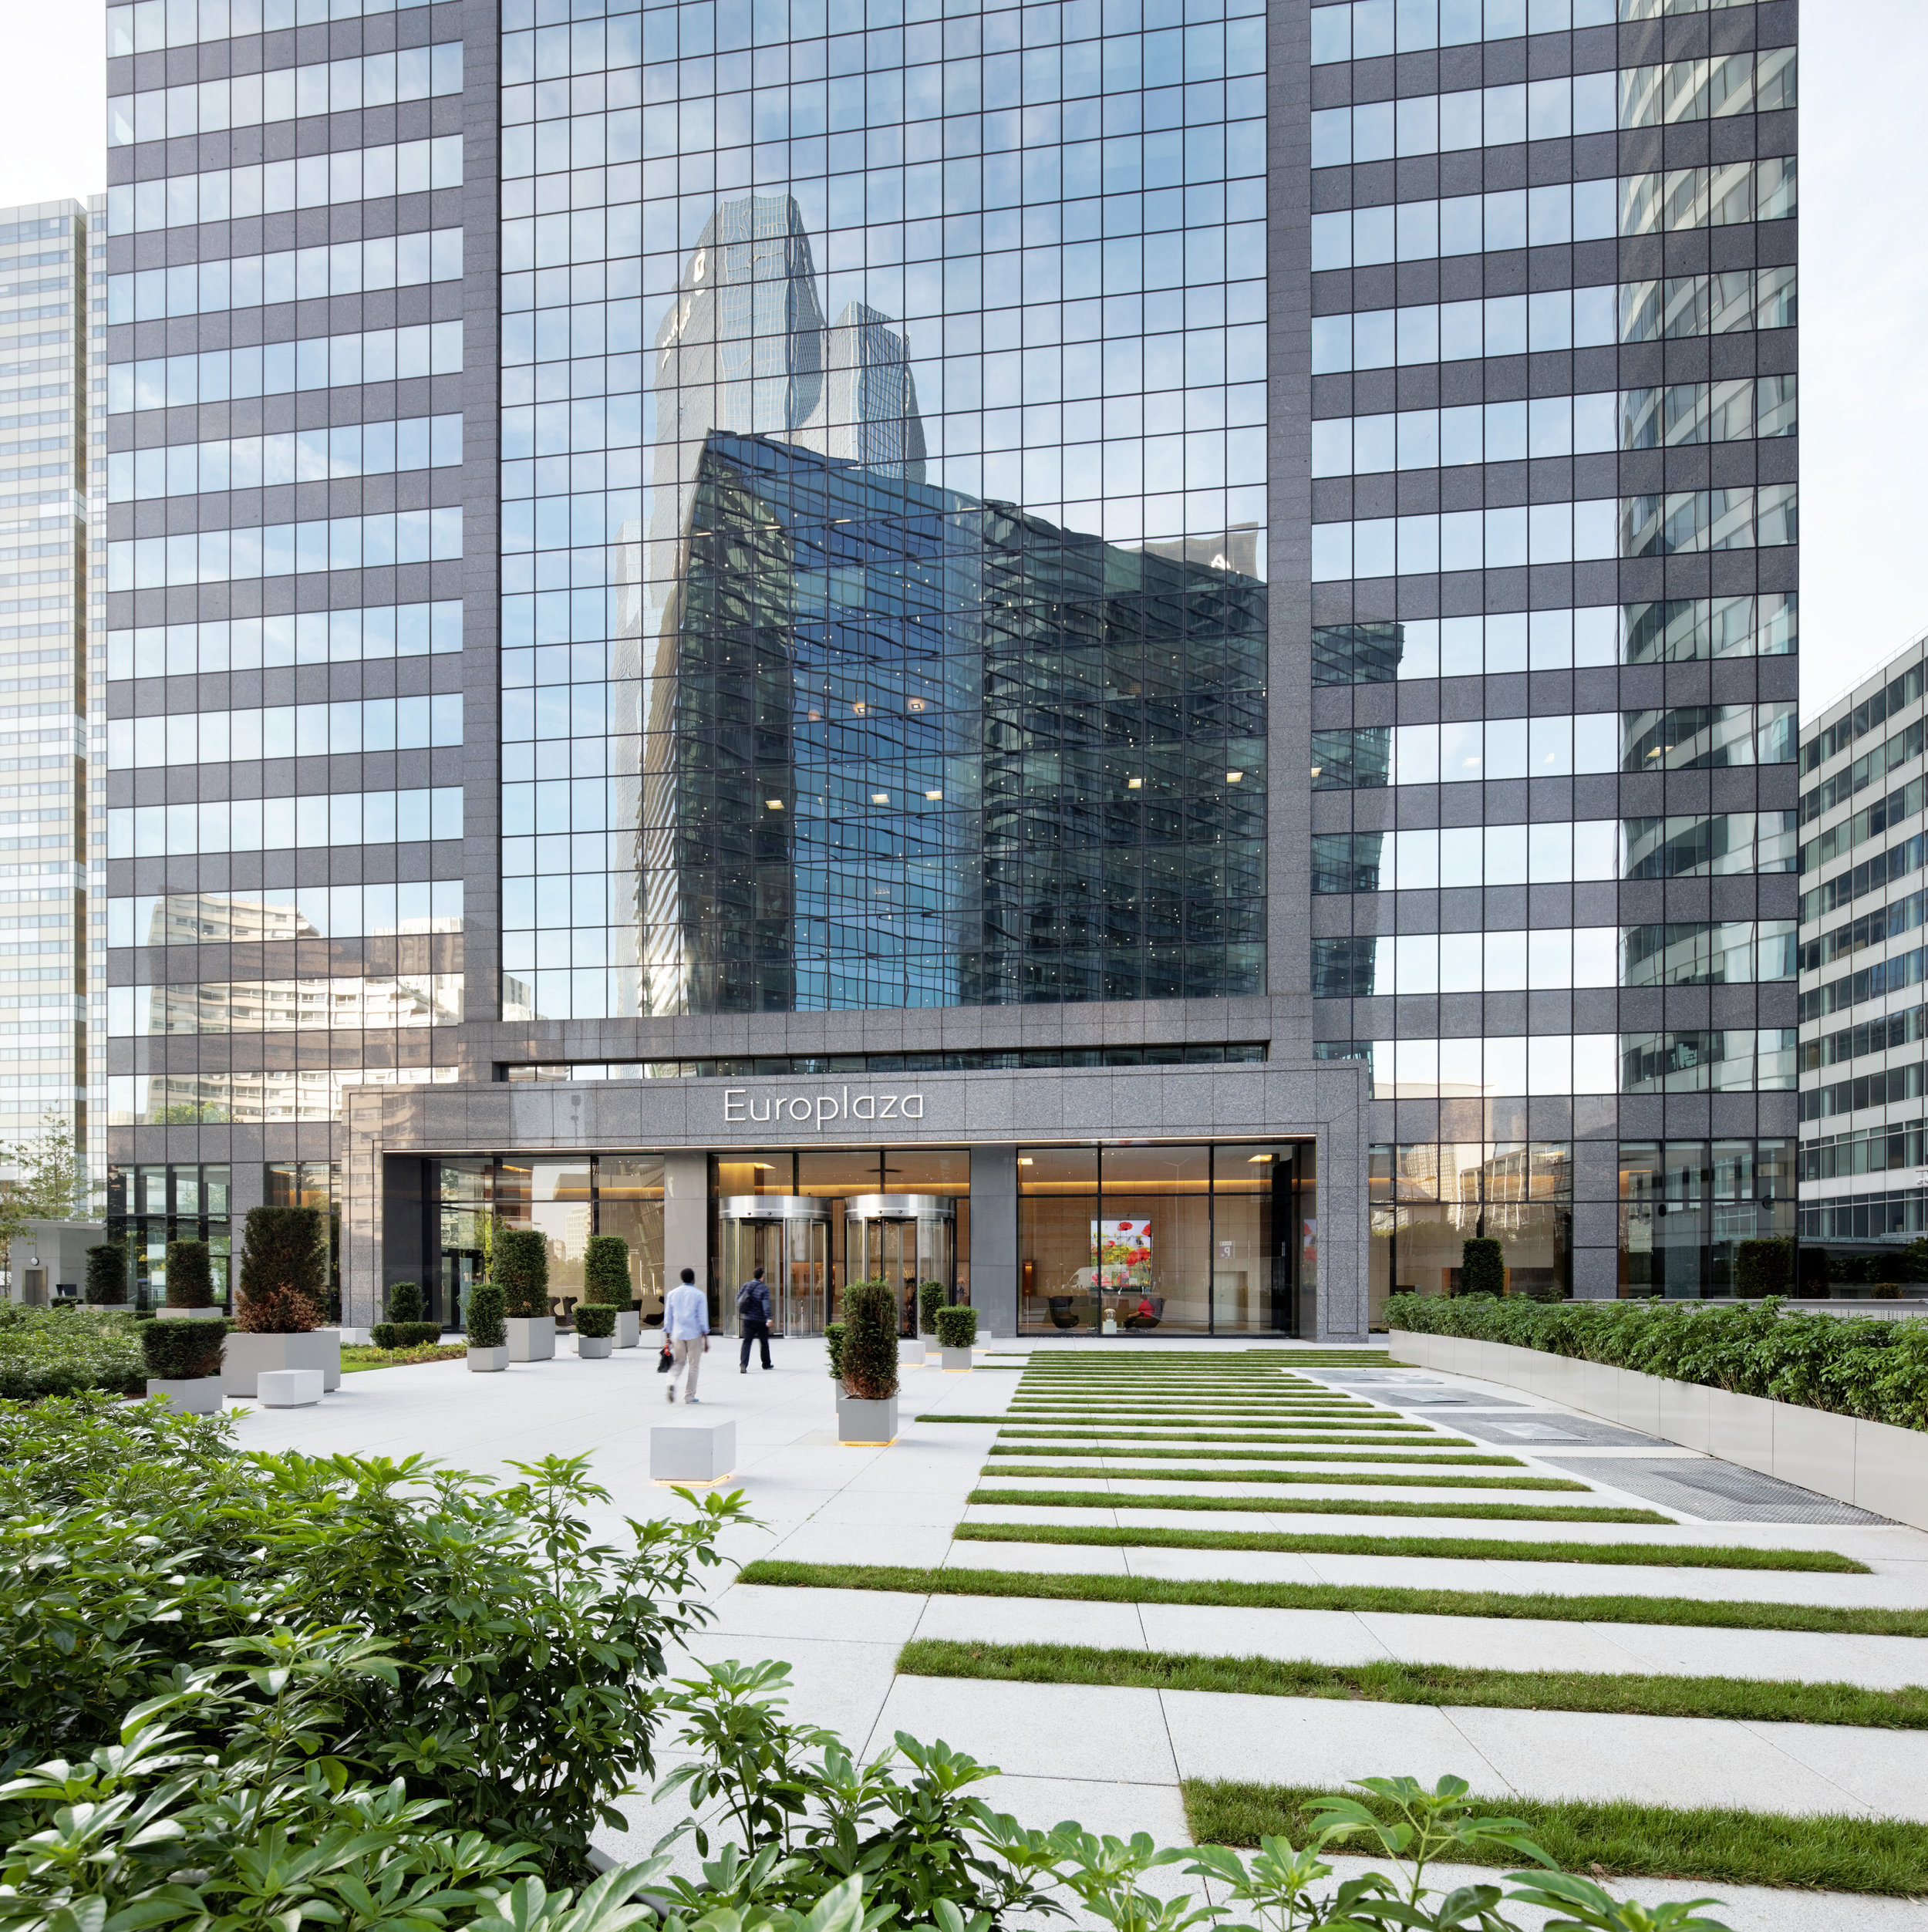 Gardens & Patios / Europlaza Tower, Paris-La Défense   To optimize the use of the unique outdoor spaces of nearly 4,000 sq. meter in Paris-La Défense, our agengy worked at reversing the status of largely under utilized areas.